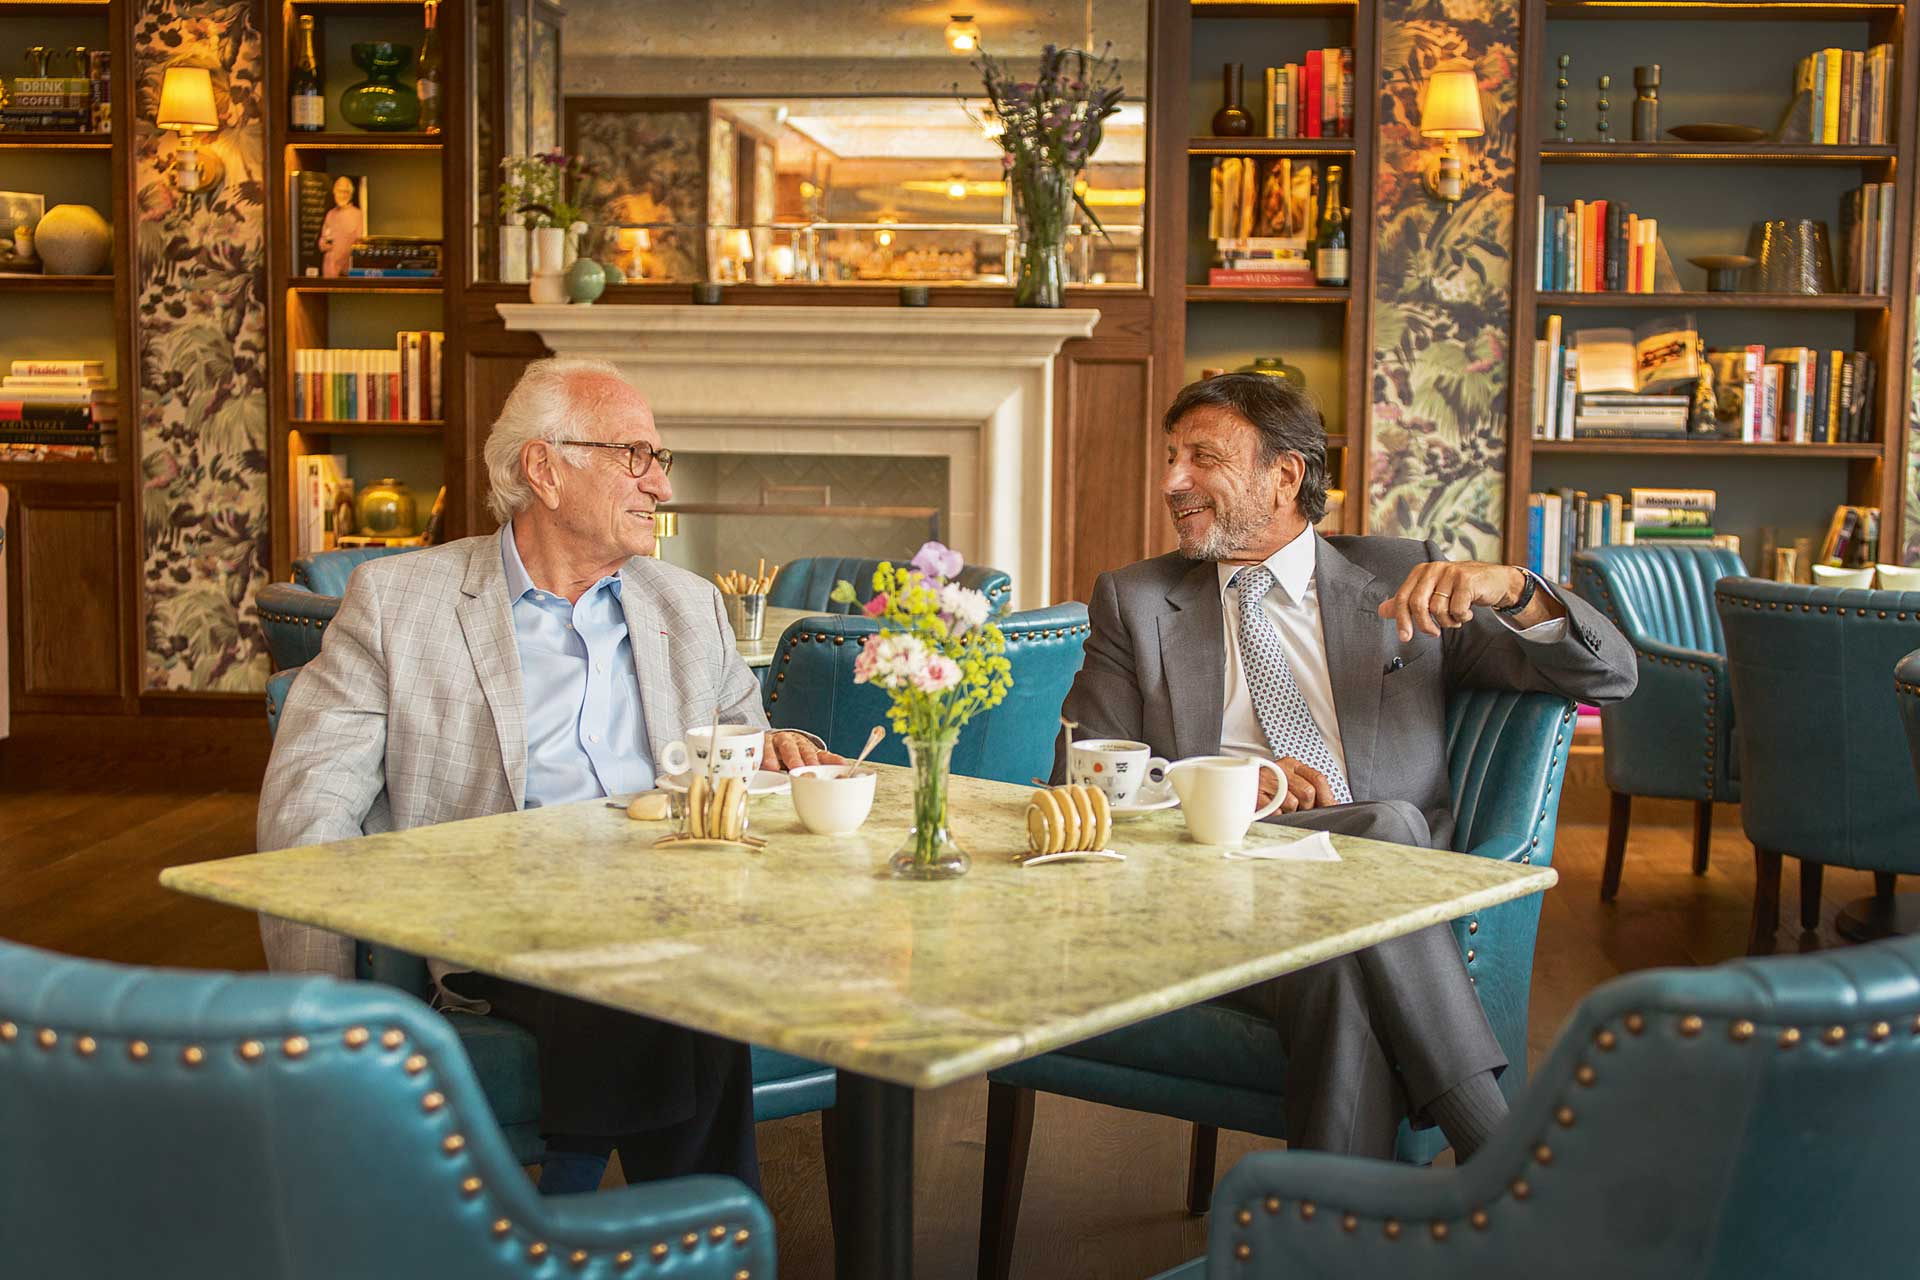 Michel Roux and Sir Rocco Forte in Brasserie Prince's library lounge